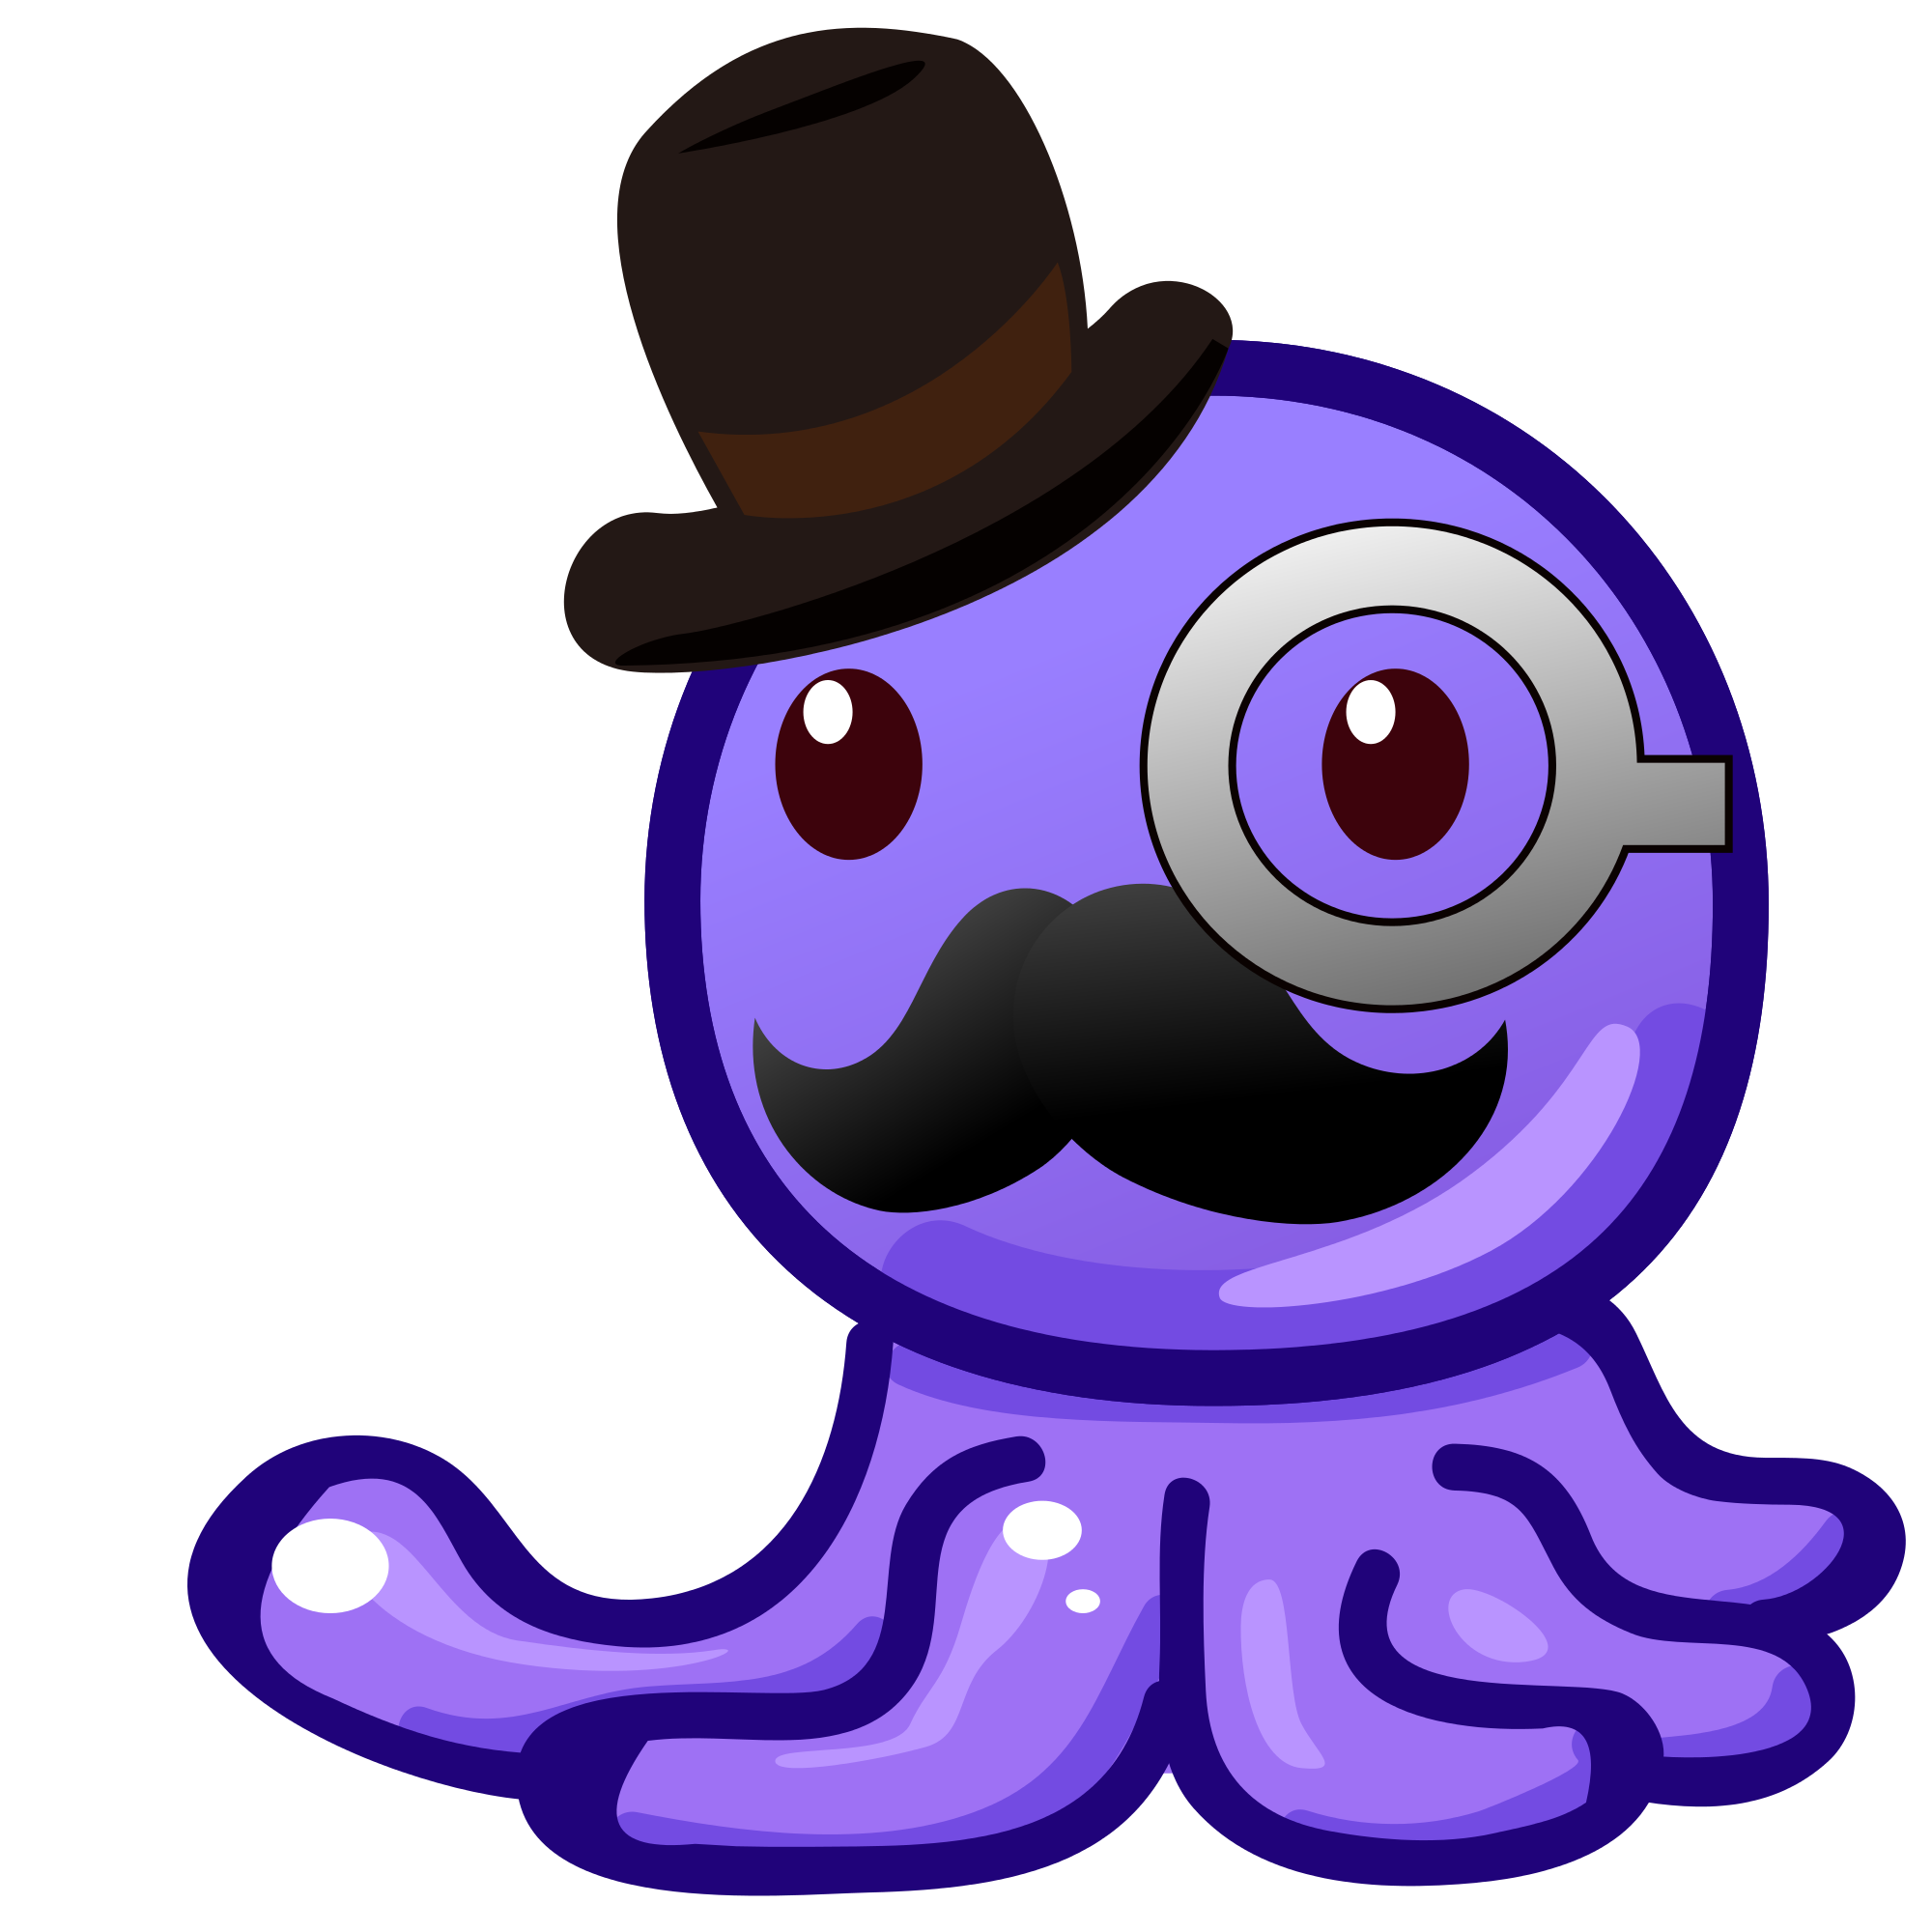 Clipart octopus svg. File peo gentleman wikimedia